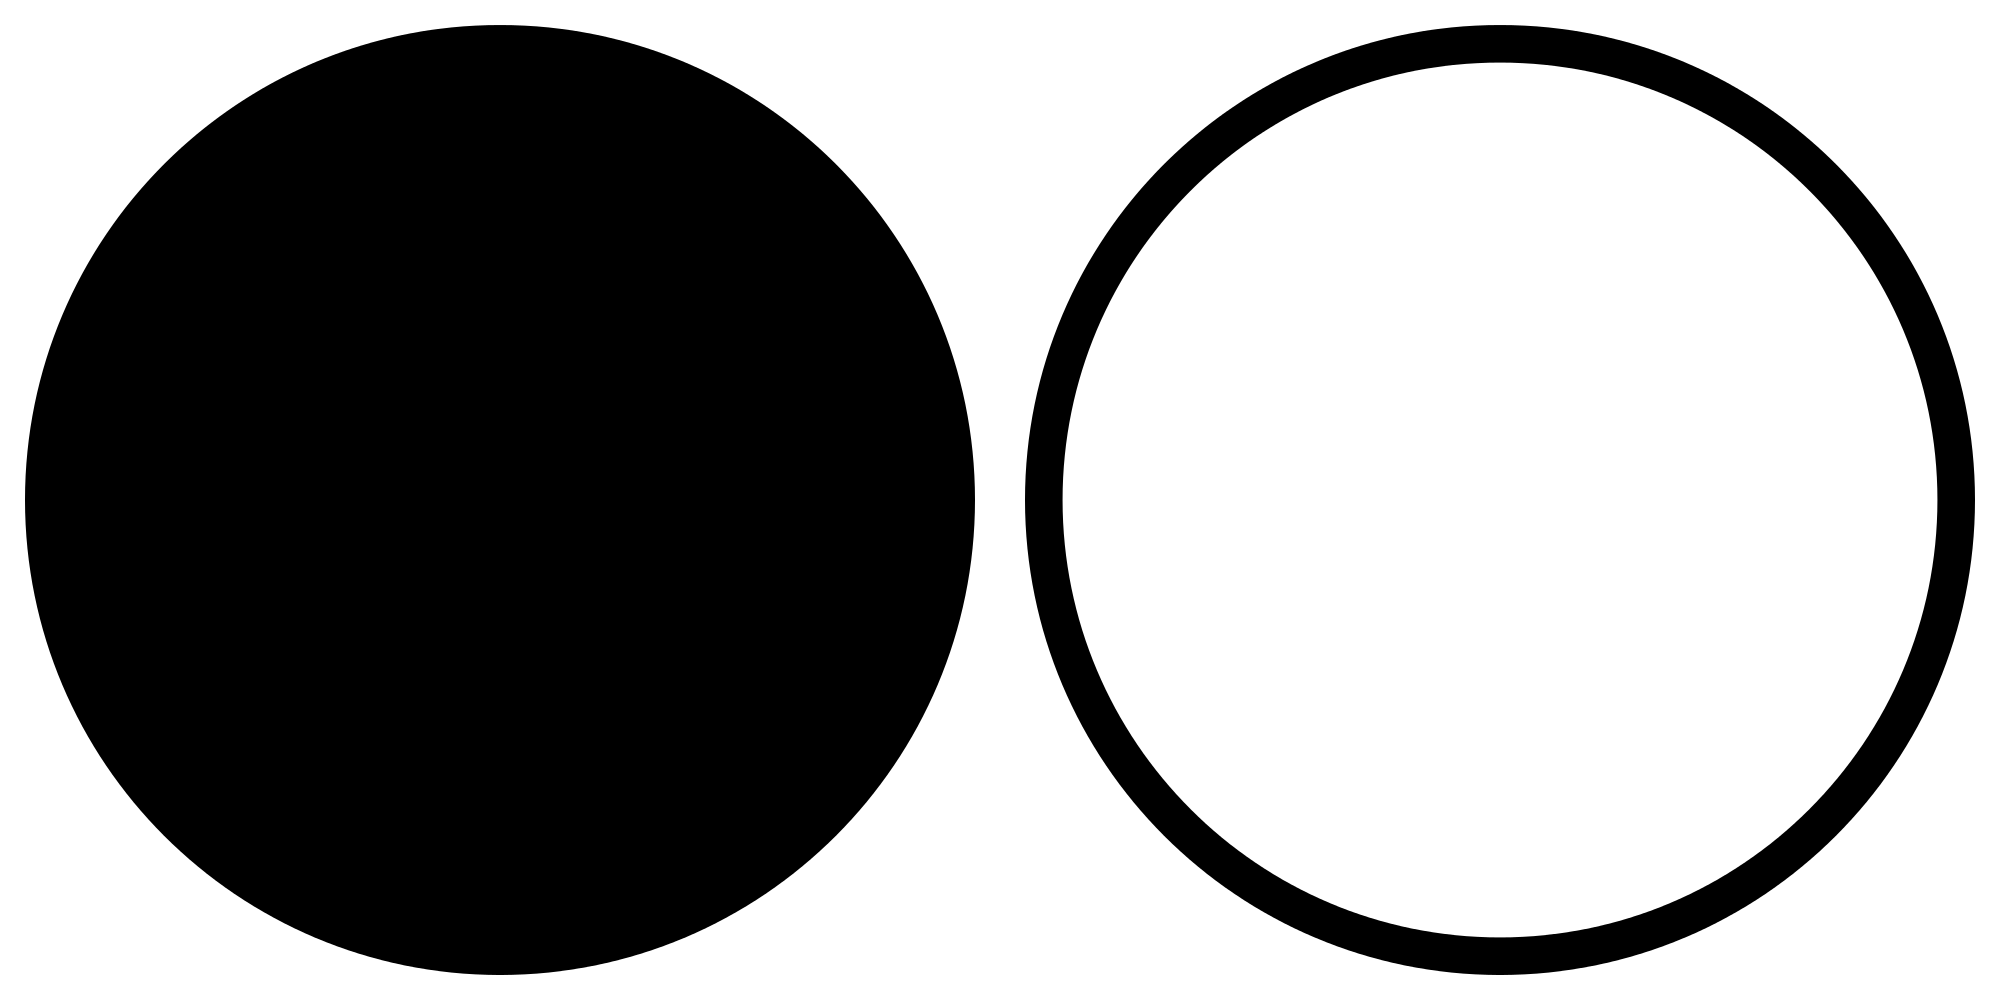 circle clipart black and white  circle black and white